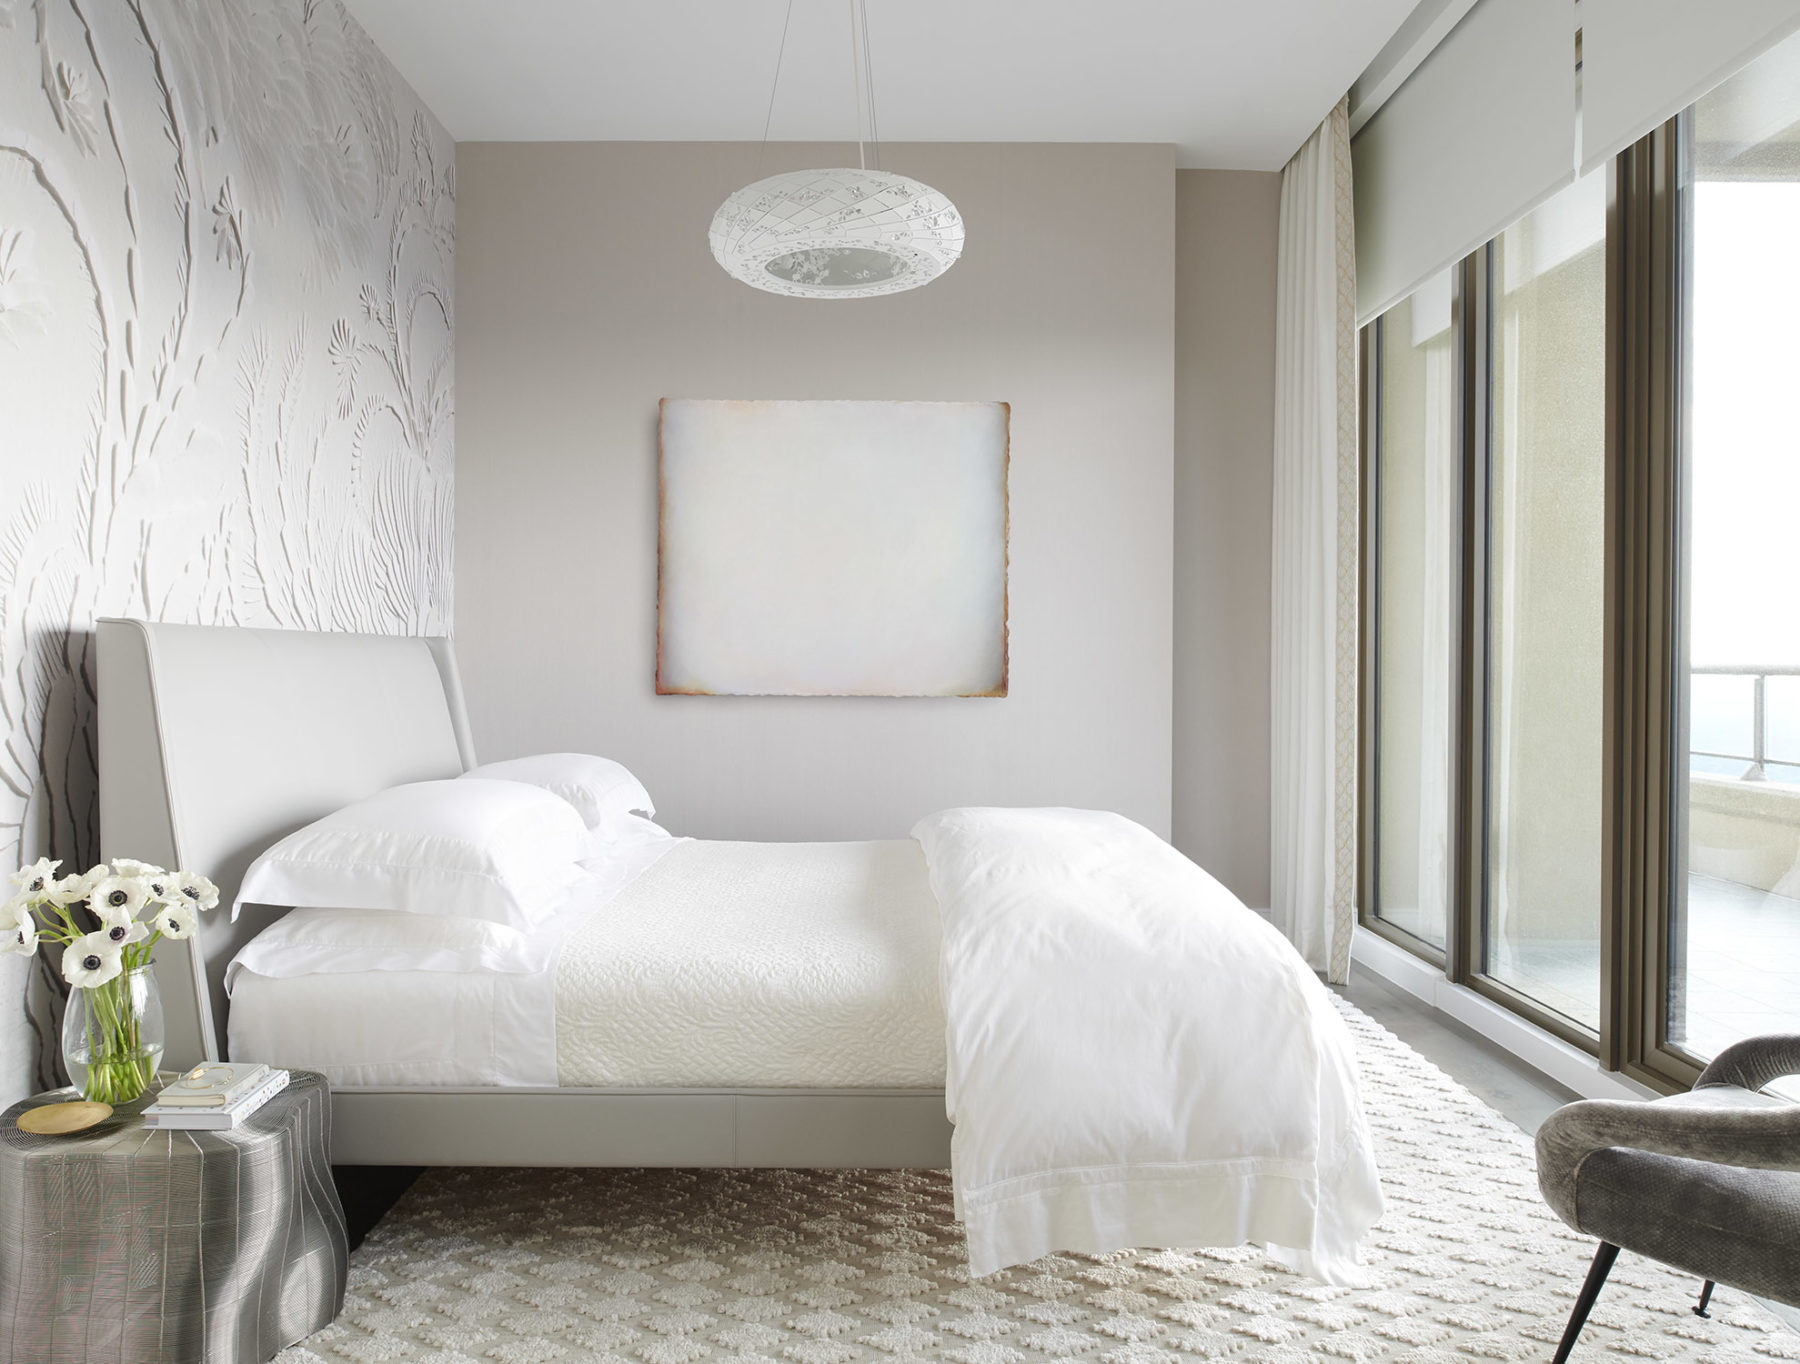 Ethereal bedroom in an apartment designed by Harrison Design with Poltrona Frau bedframe and Phillip Jeffries wall treatment.